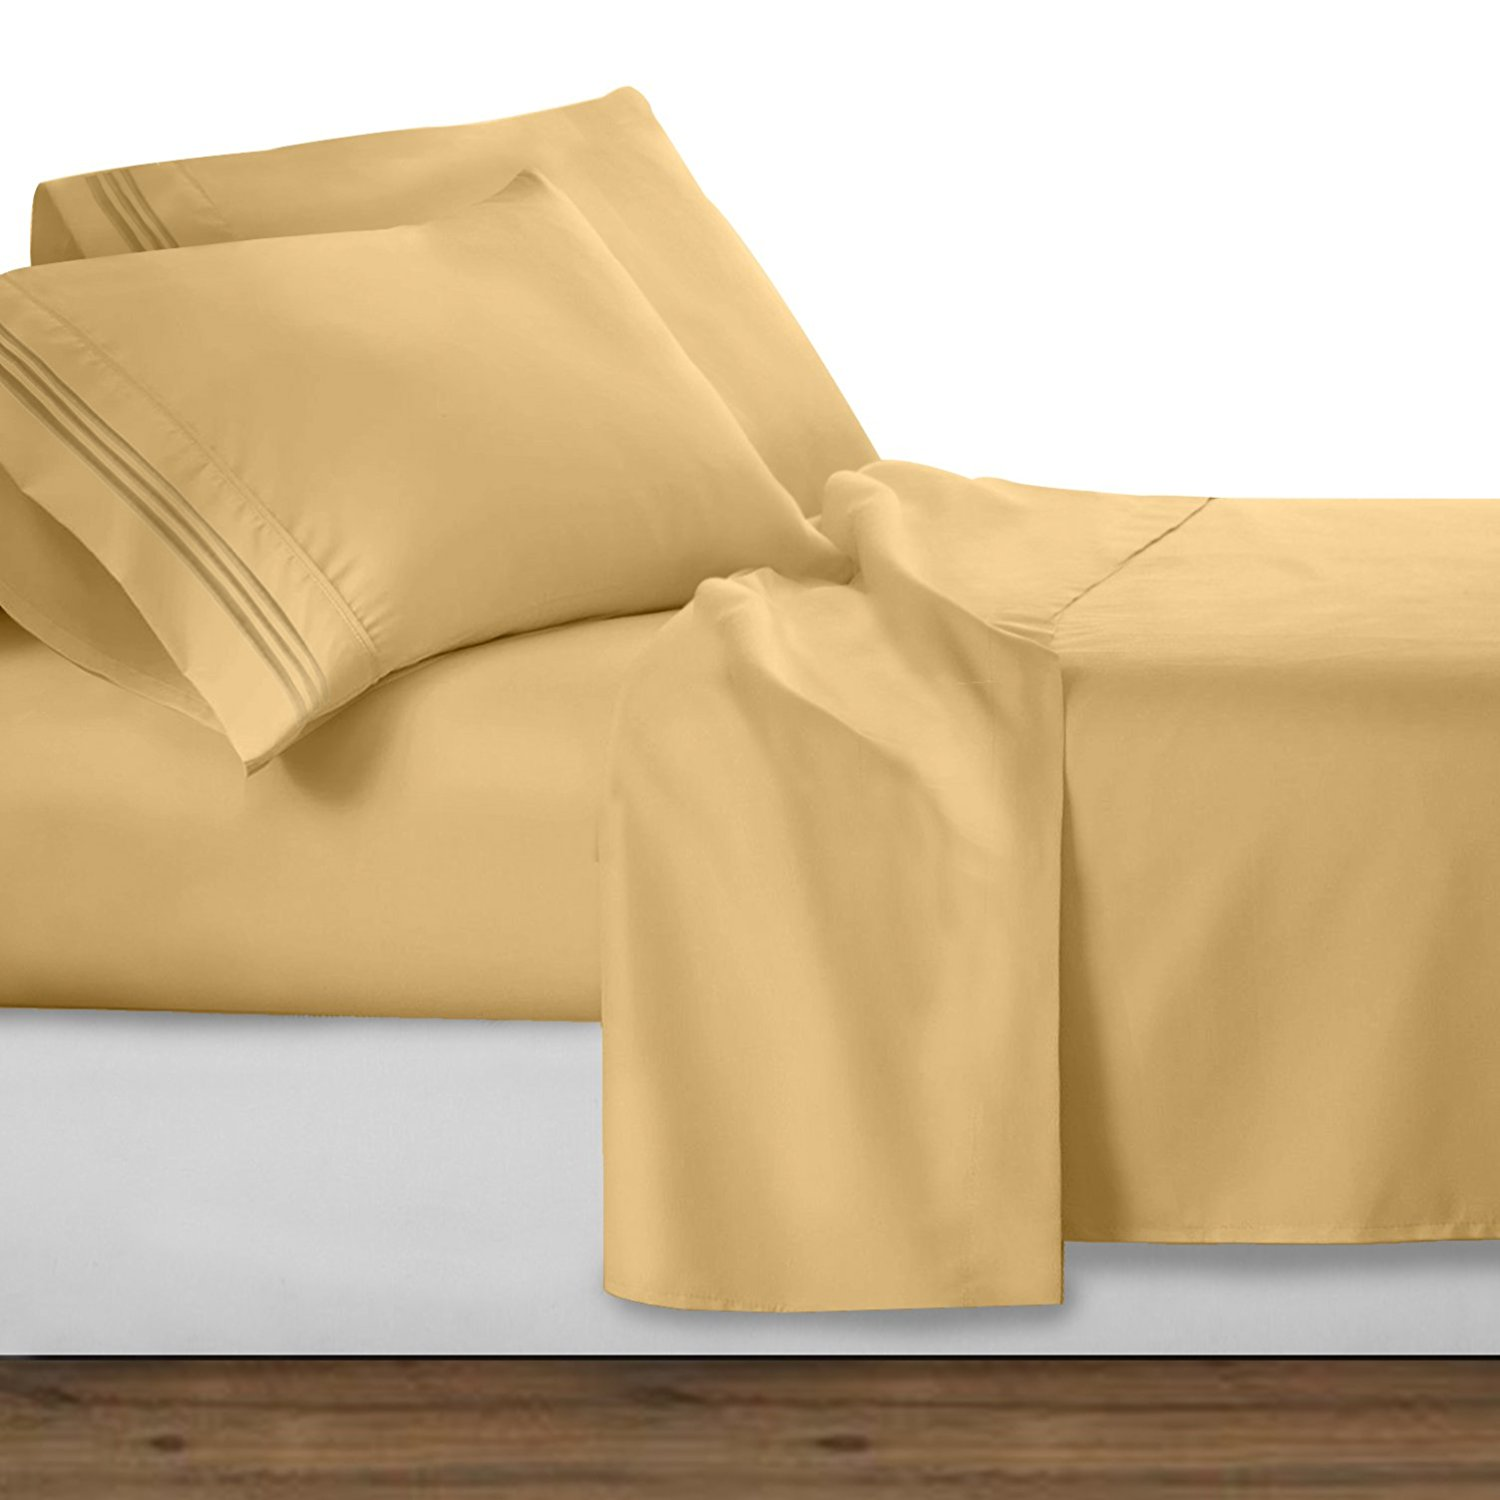 Elegant Comfort  1500 Thread Count Egyptian Quality Wrinkle and Fade Resistant 4-Piece Bed Sheet set, Deep Pocket, HypoAllergenic - Queen, Gold